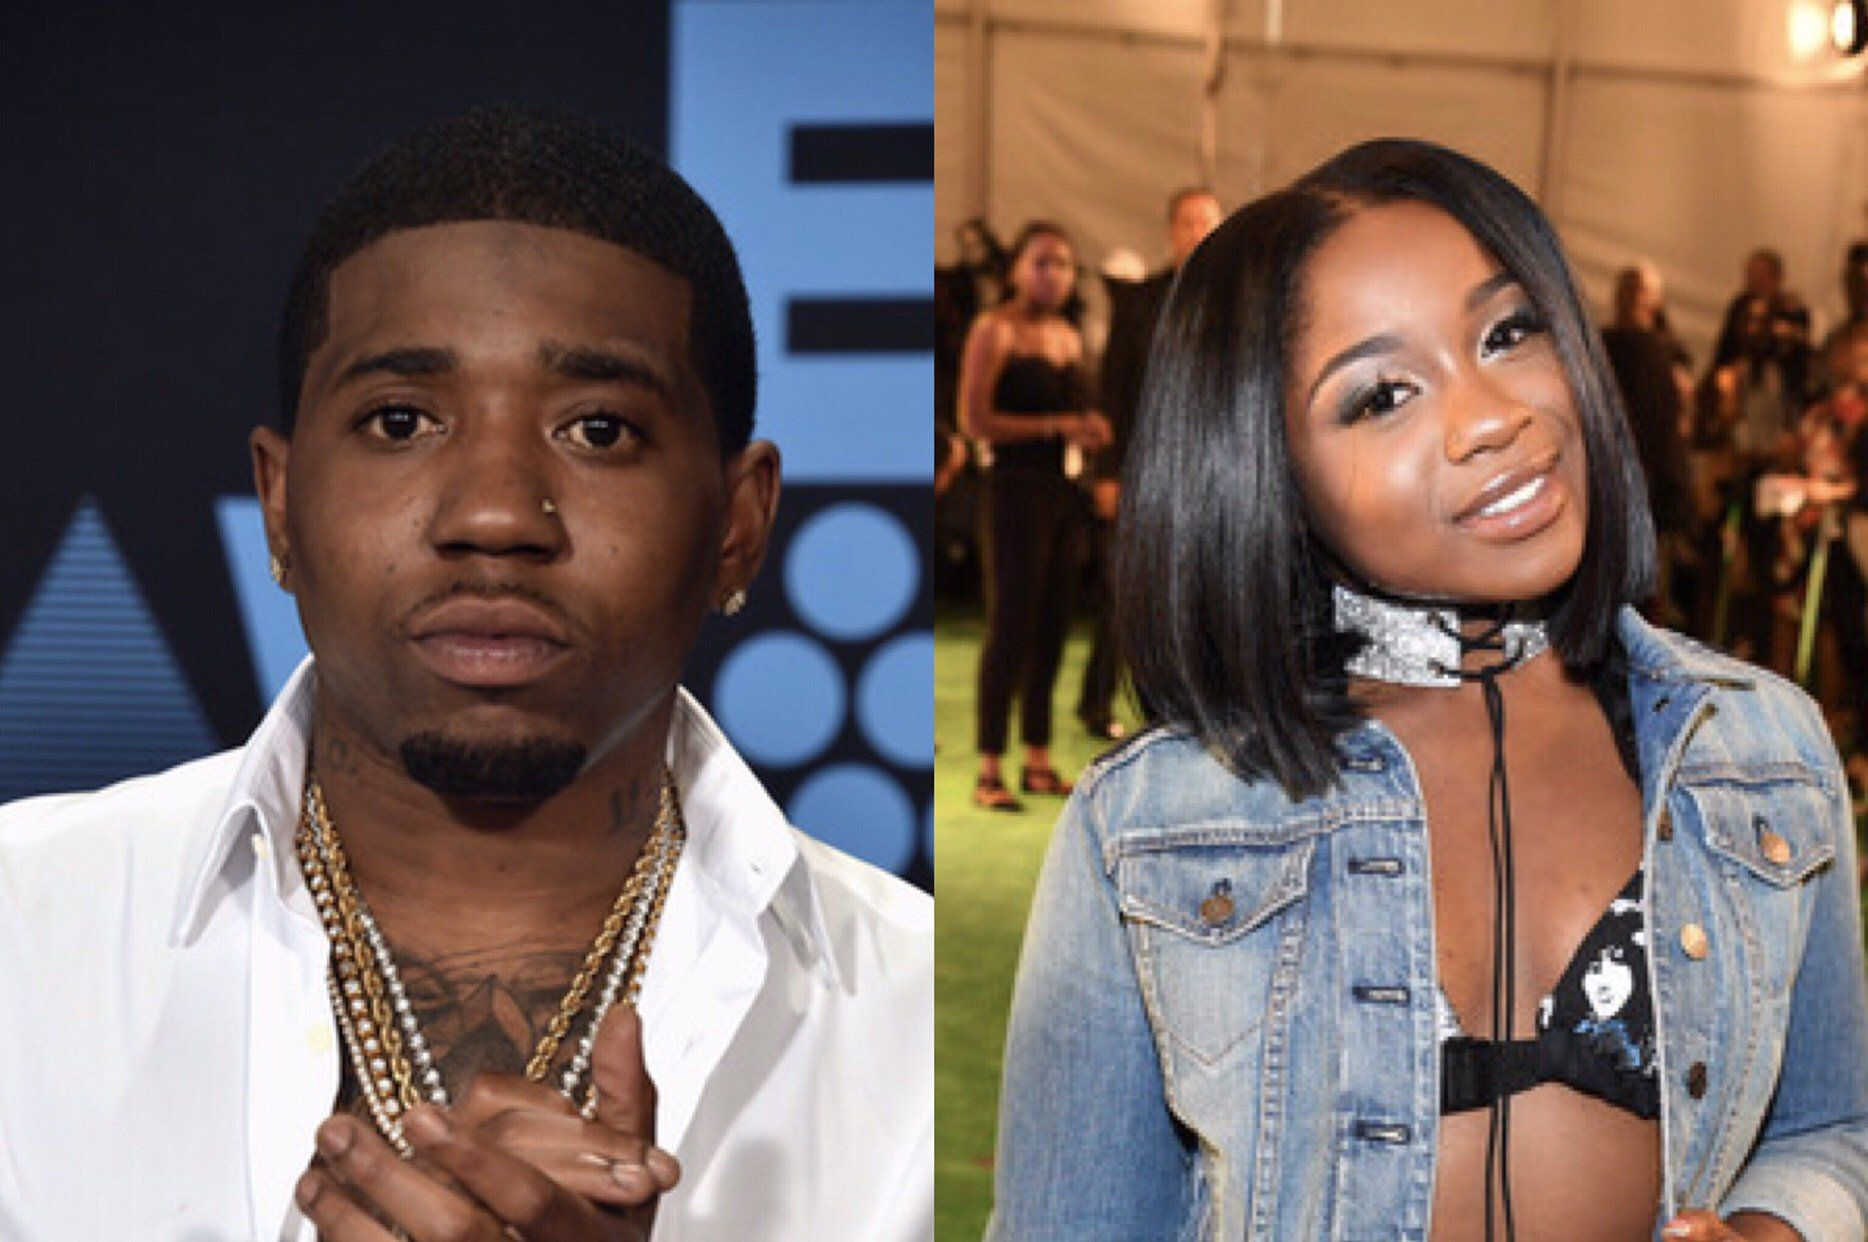 Reginae Carter Updates Fans On YFN Lucci's Situation Following His Arrest